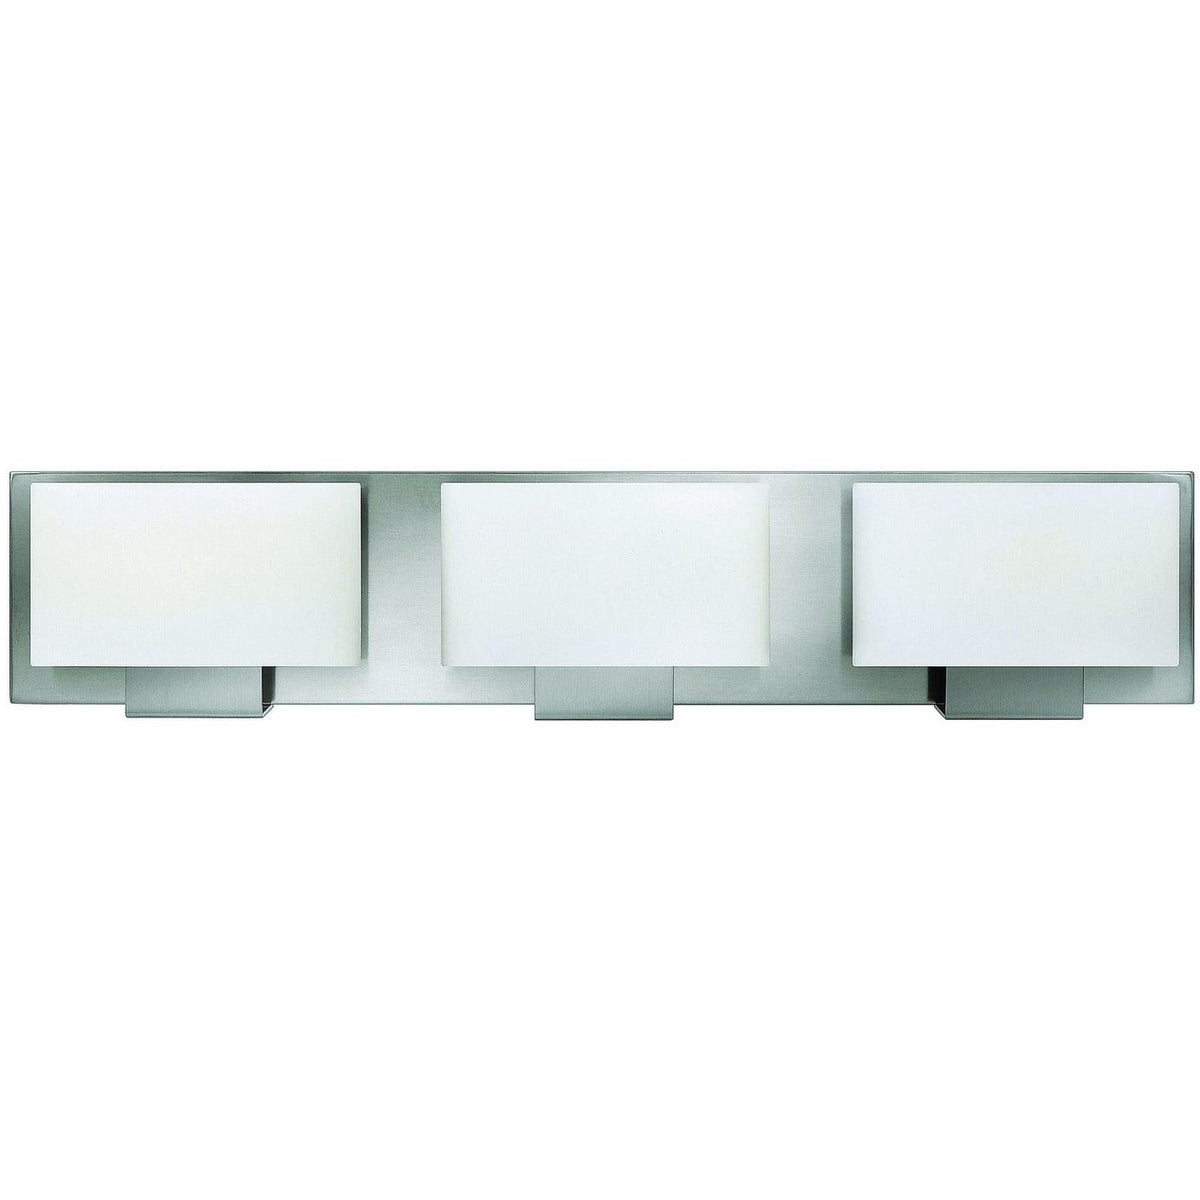 Hinkley Canada - 53553BN-LED - Three Light Bath - Mila - Brushed Nickel